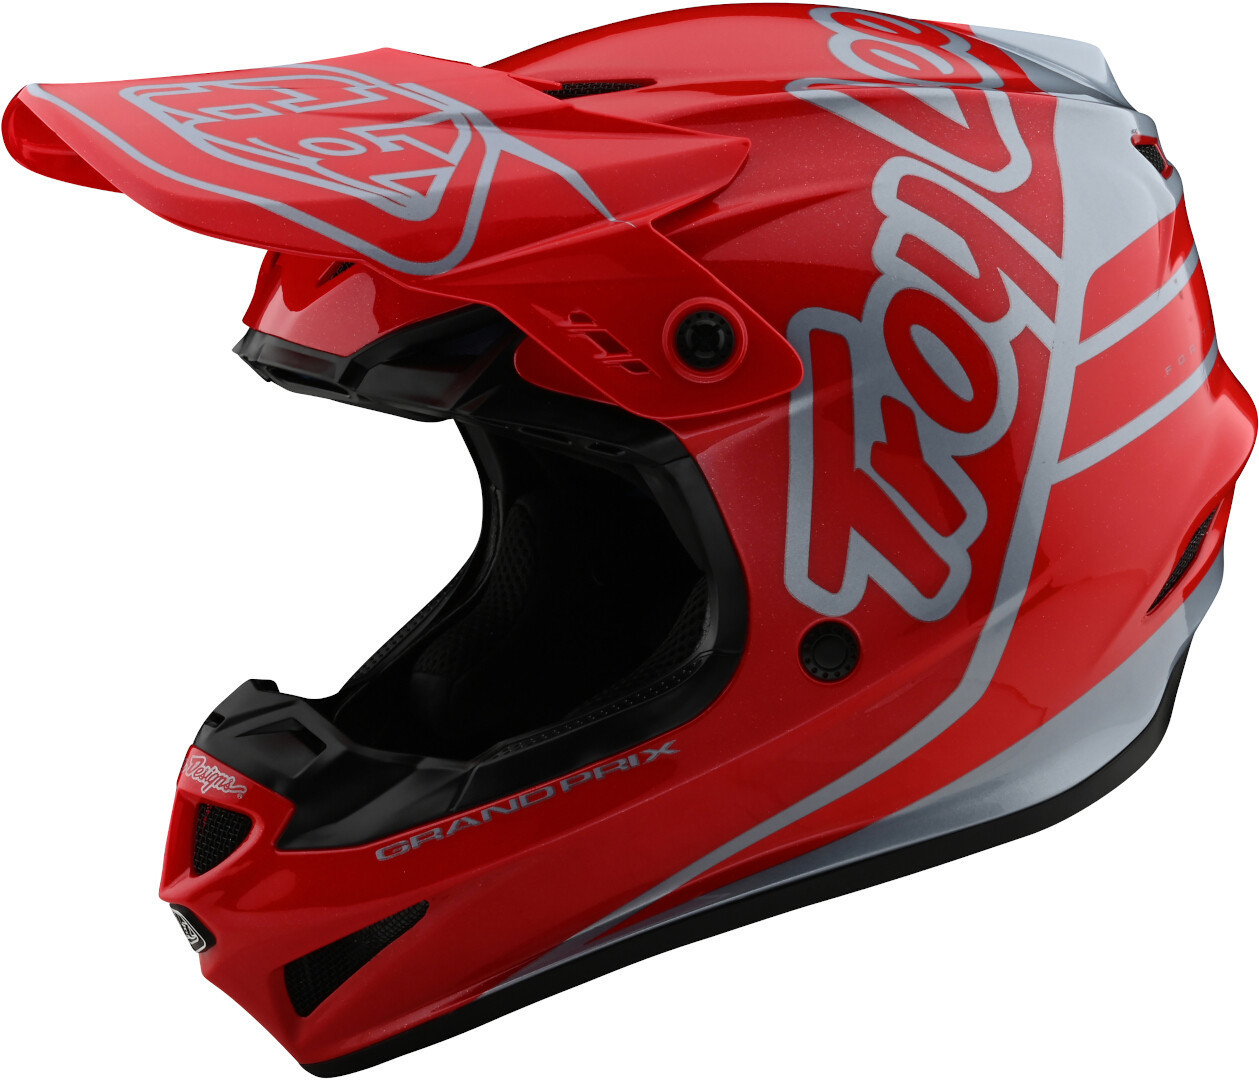 Troy Lee Designs GP Silhouette Motocross Helmet, red-silver, Size S, red-silver, Size S